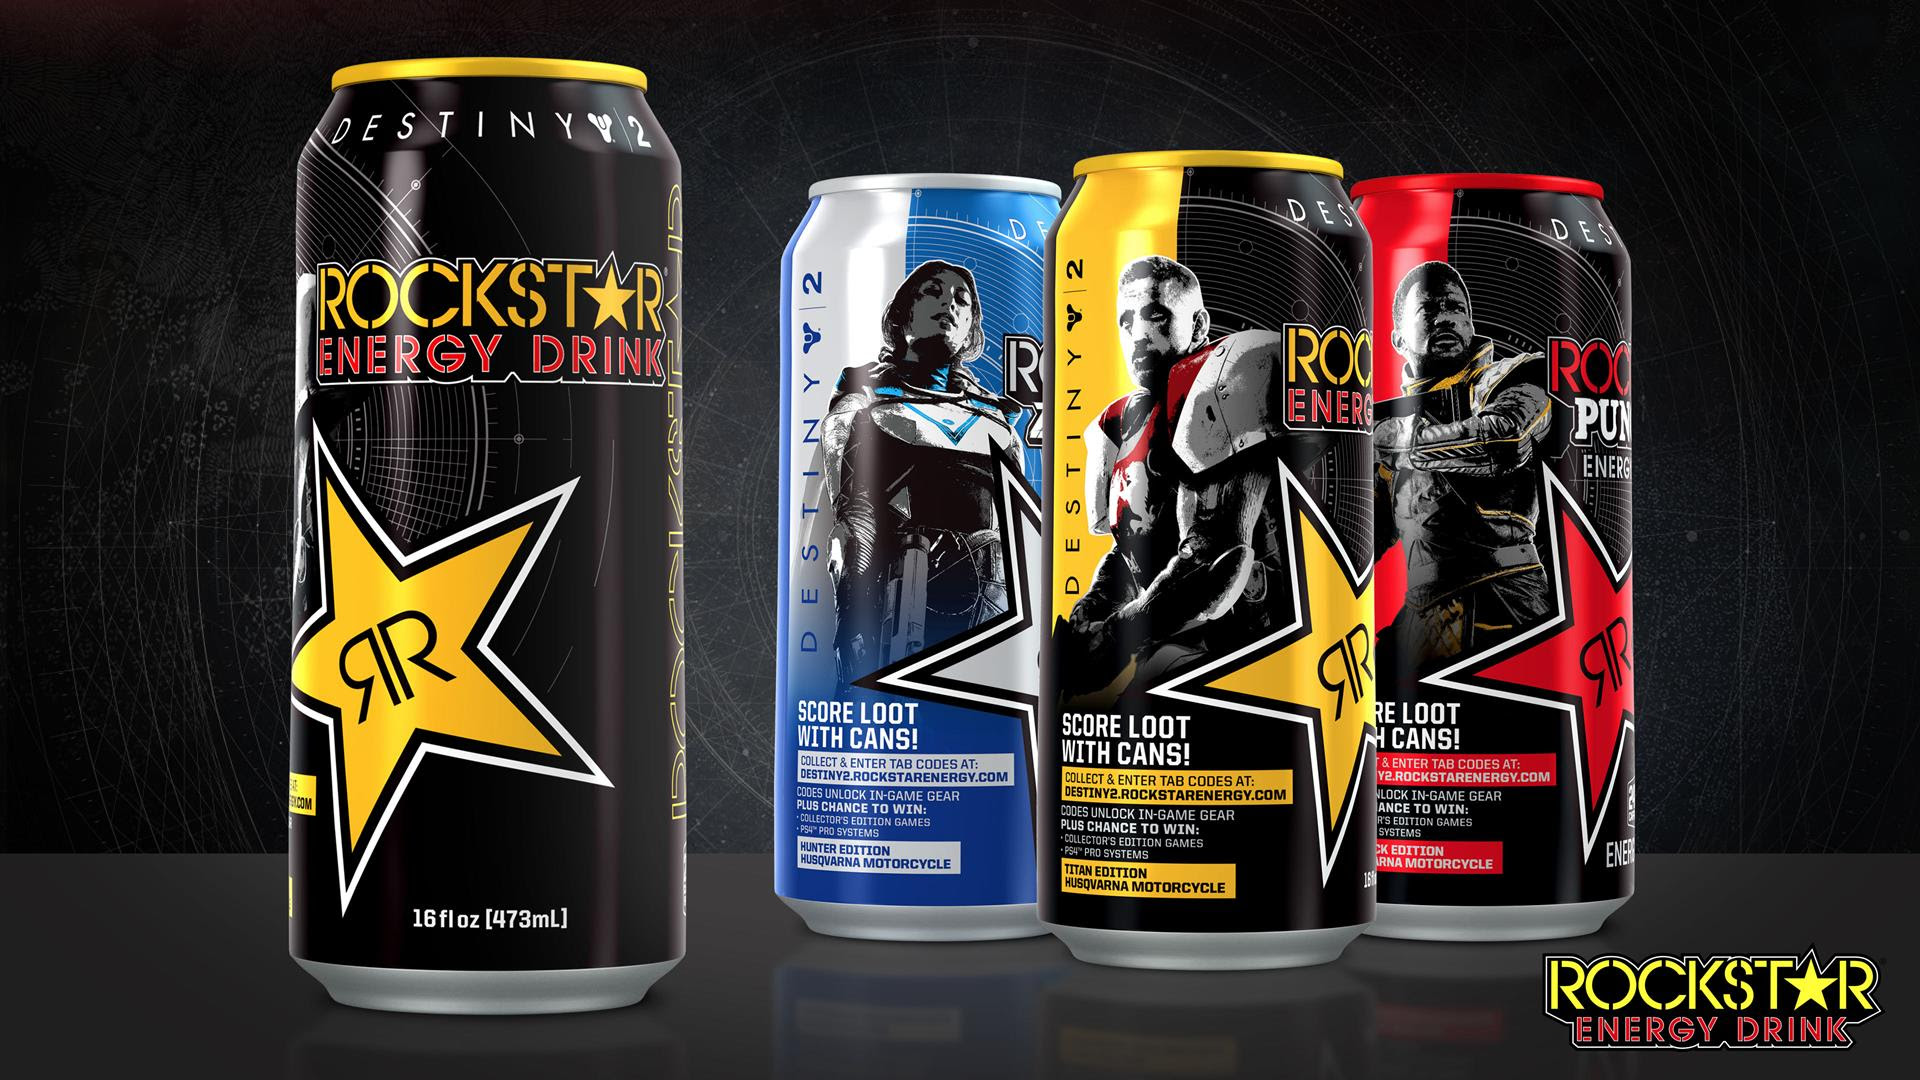 Destiny 2 announces promotion with Pop-Tarts and Rockstar energy drinks screenshot